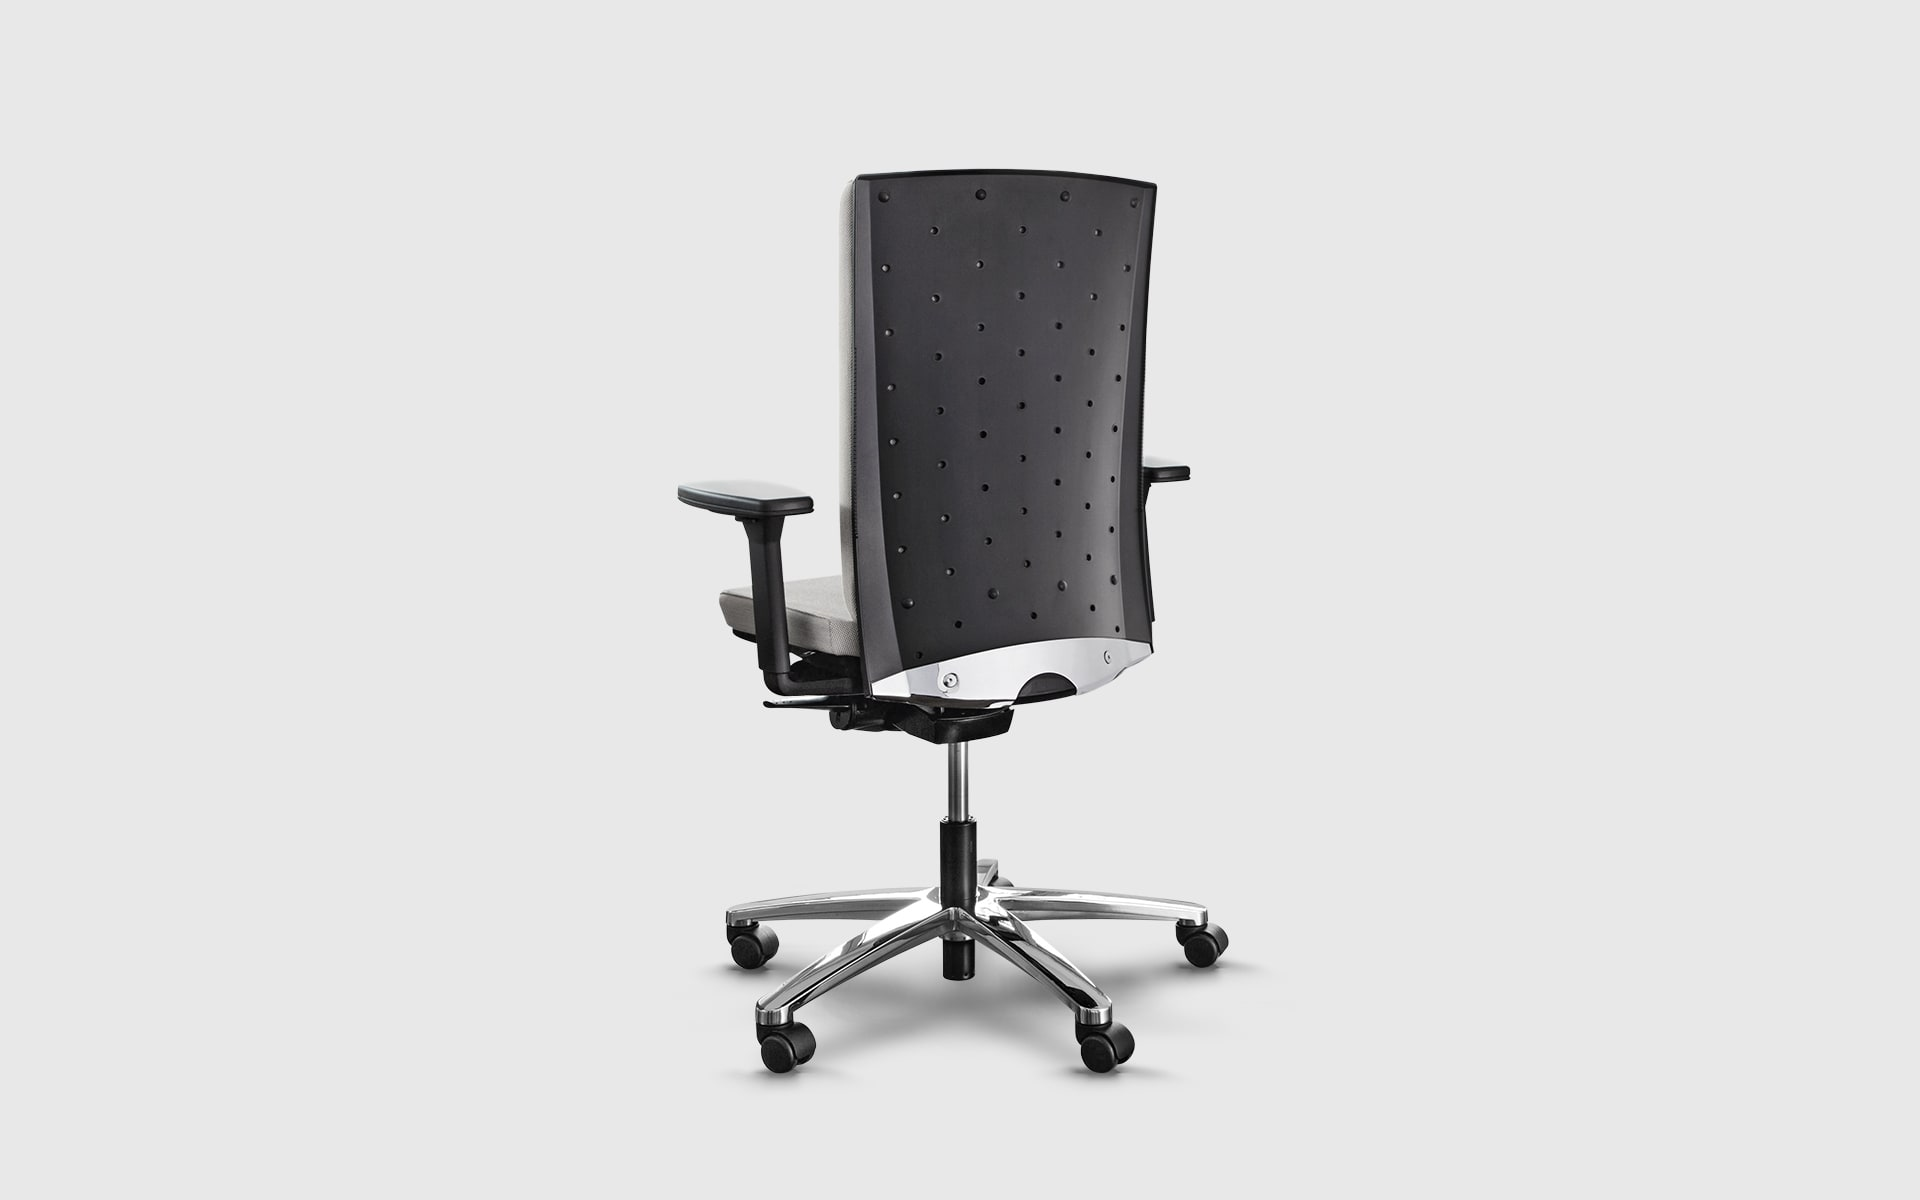 König + Neurath Tensa office chair by ITO Design with ergonomic black backrest